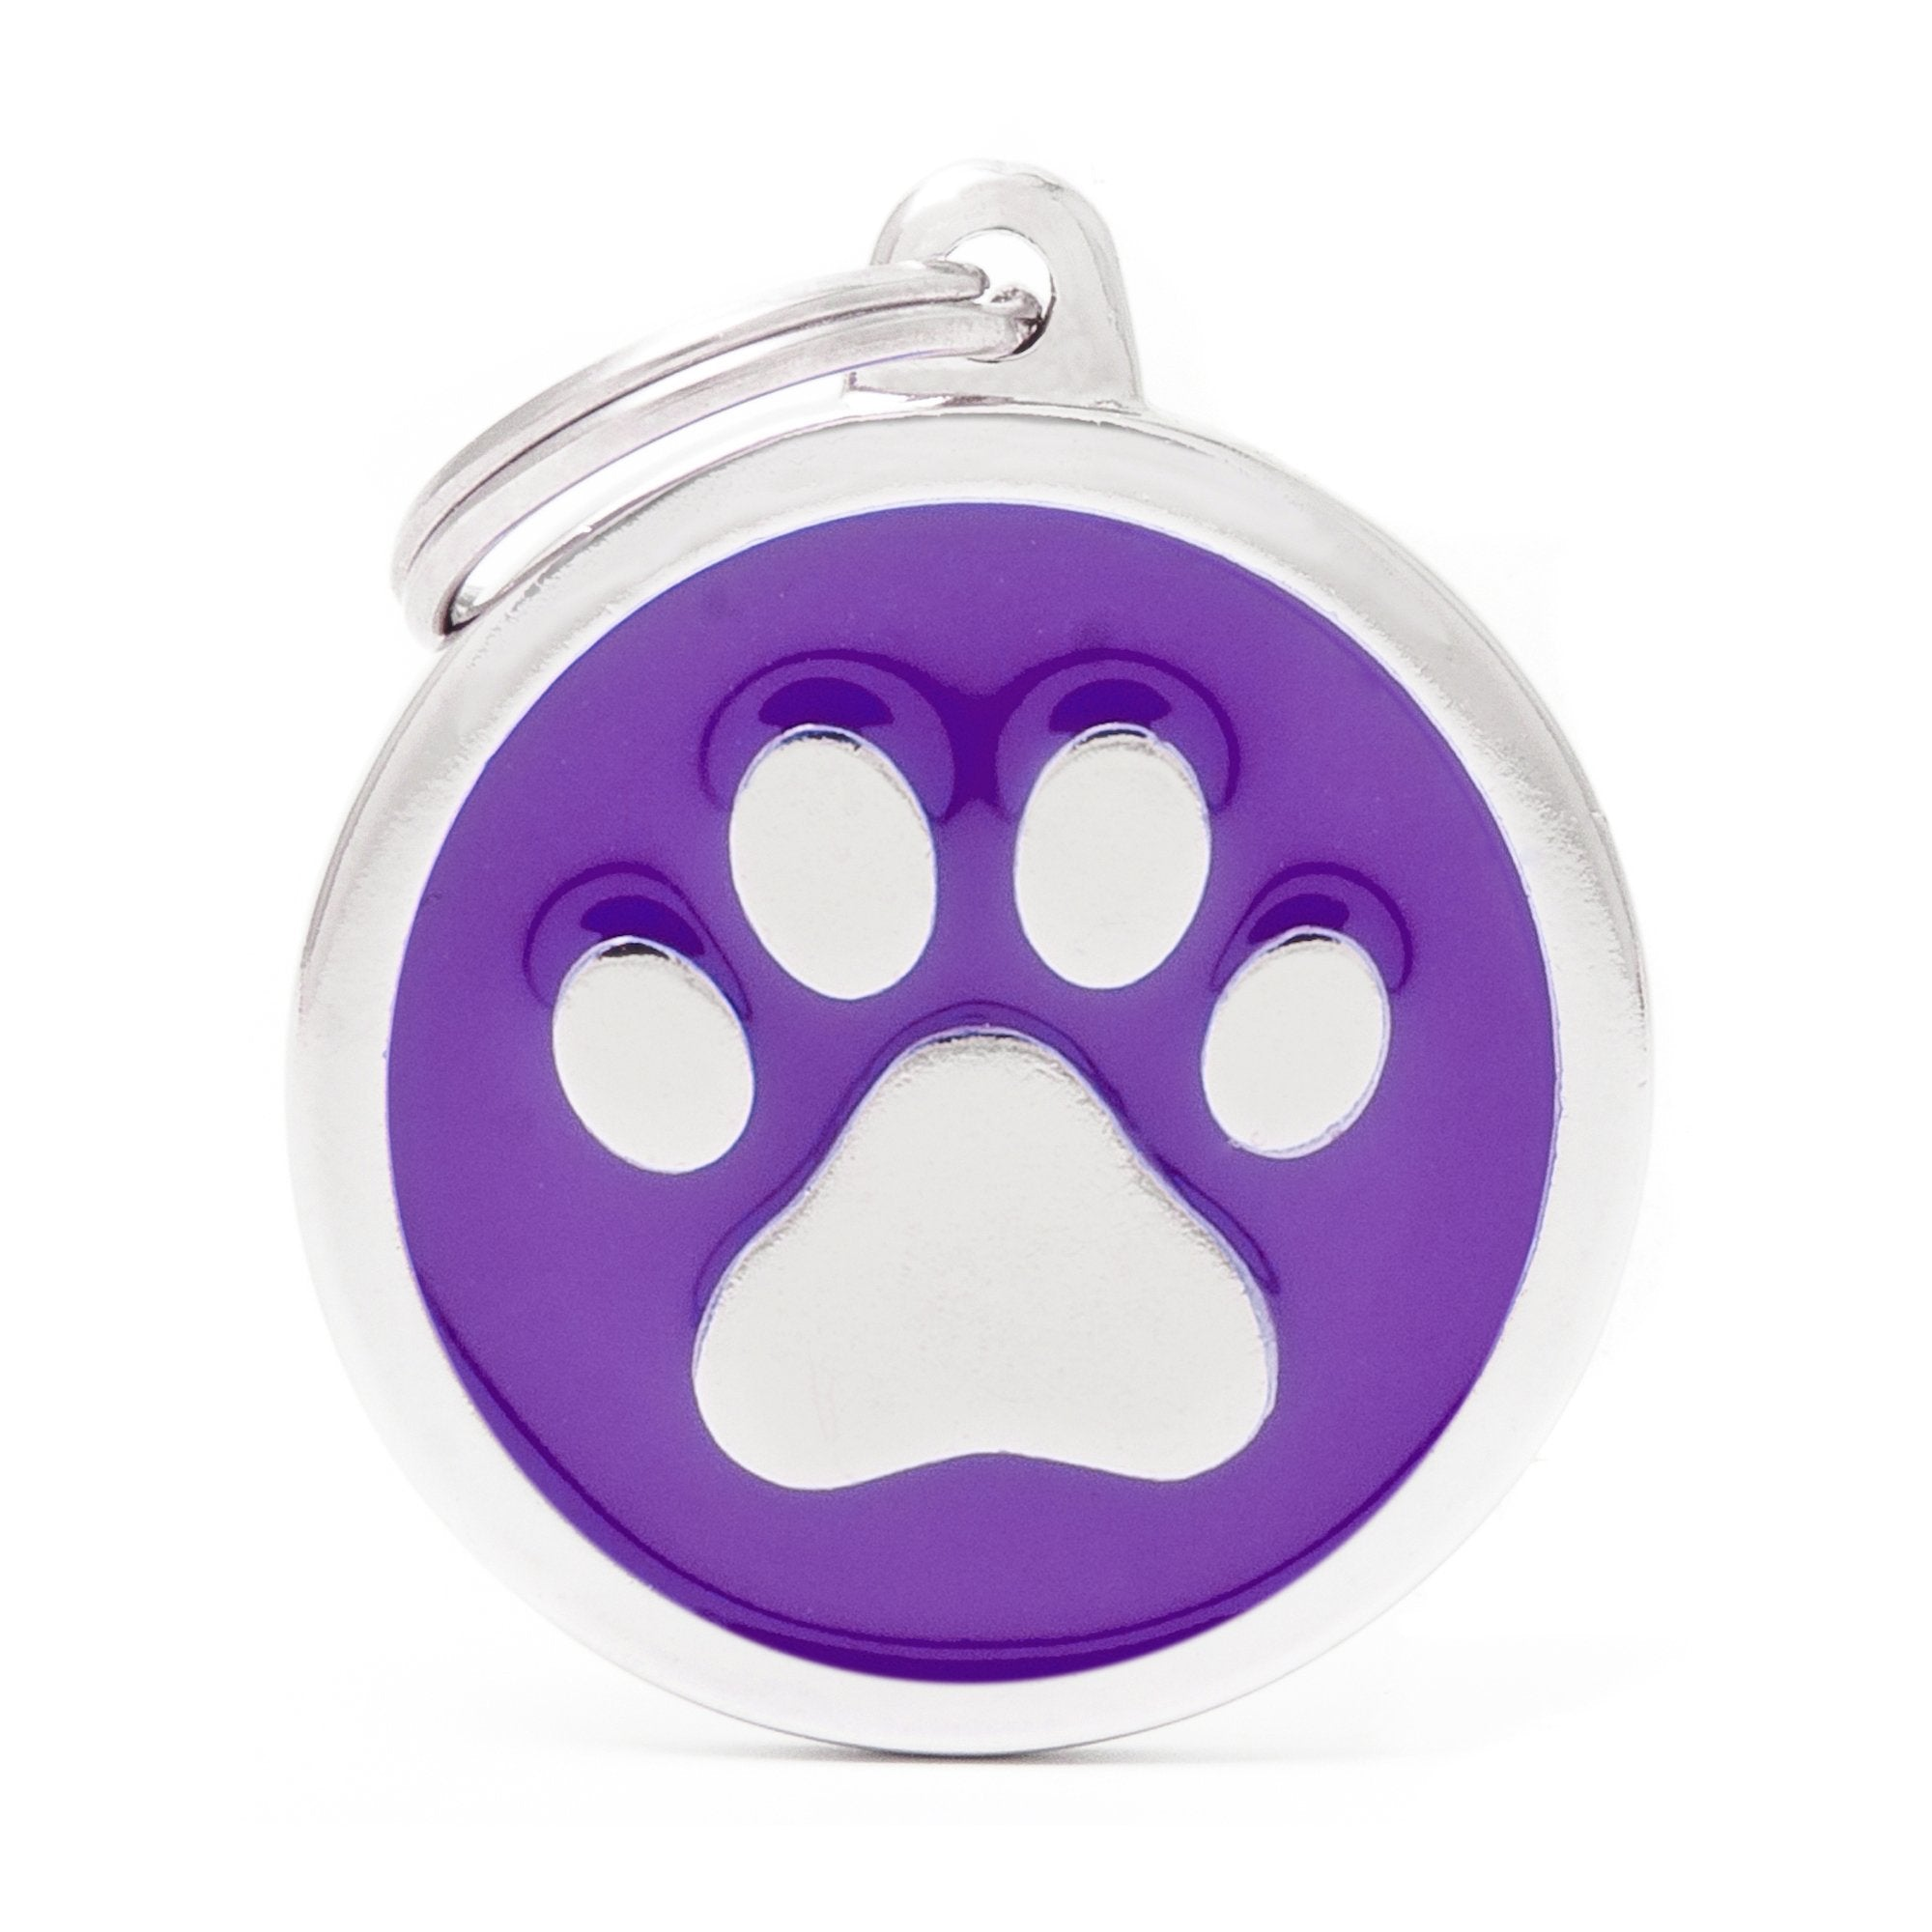 My Family Classic Purple Paw Pet I.D. Tag